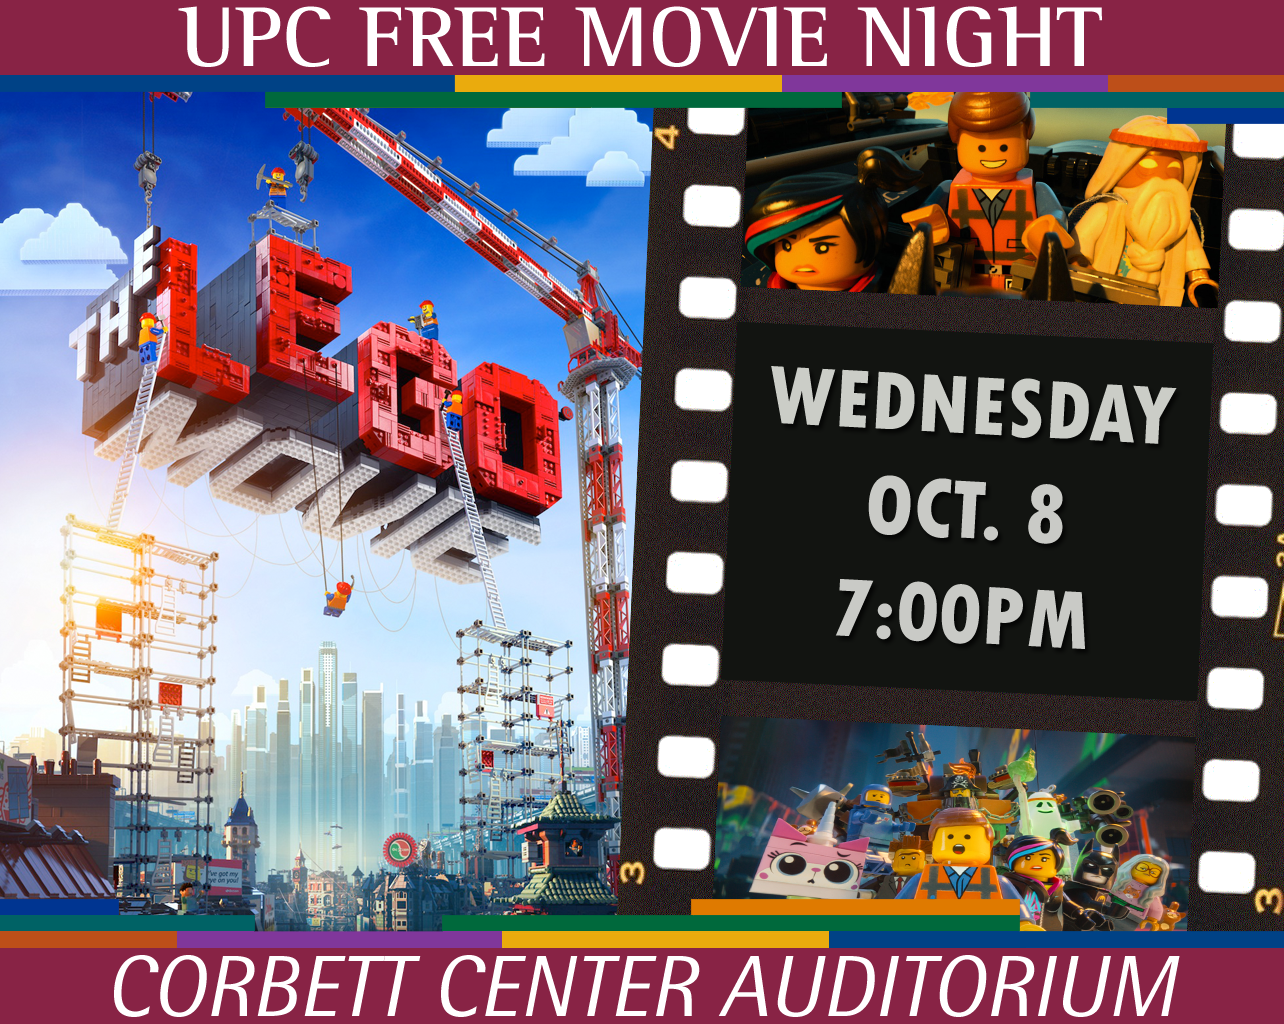 Free Screening of THE LEGO MOVIE 7pm Oct. 8 at Corbett Center Auditorium